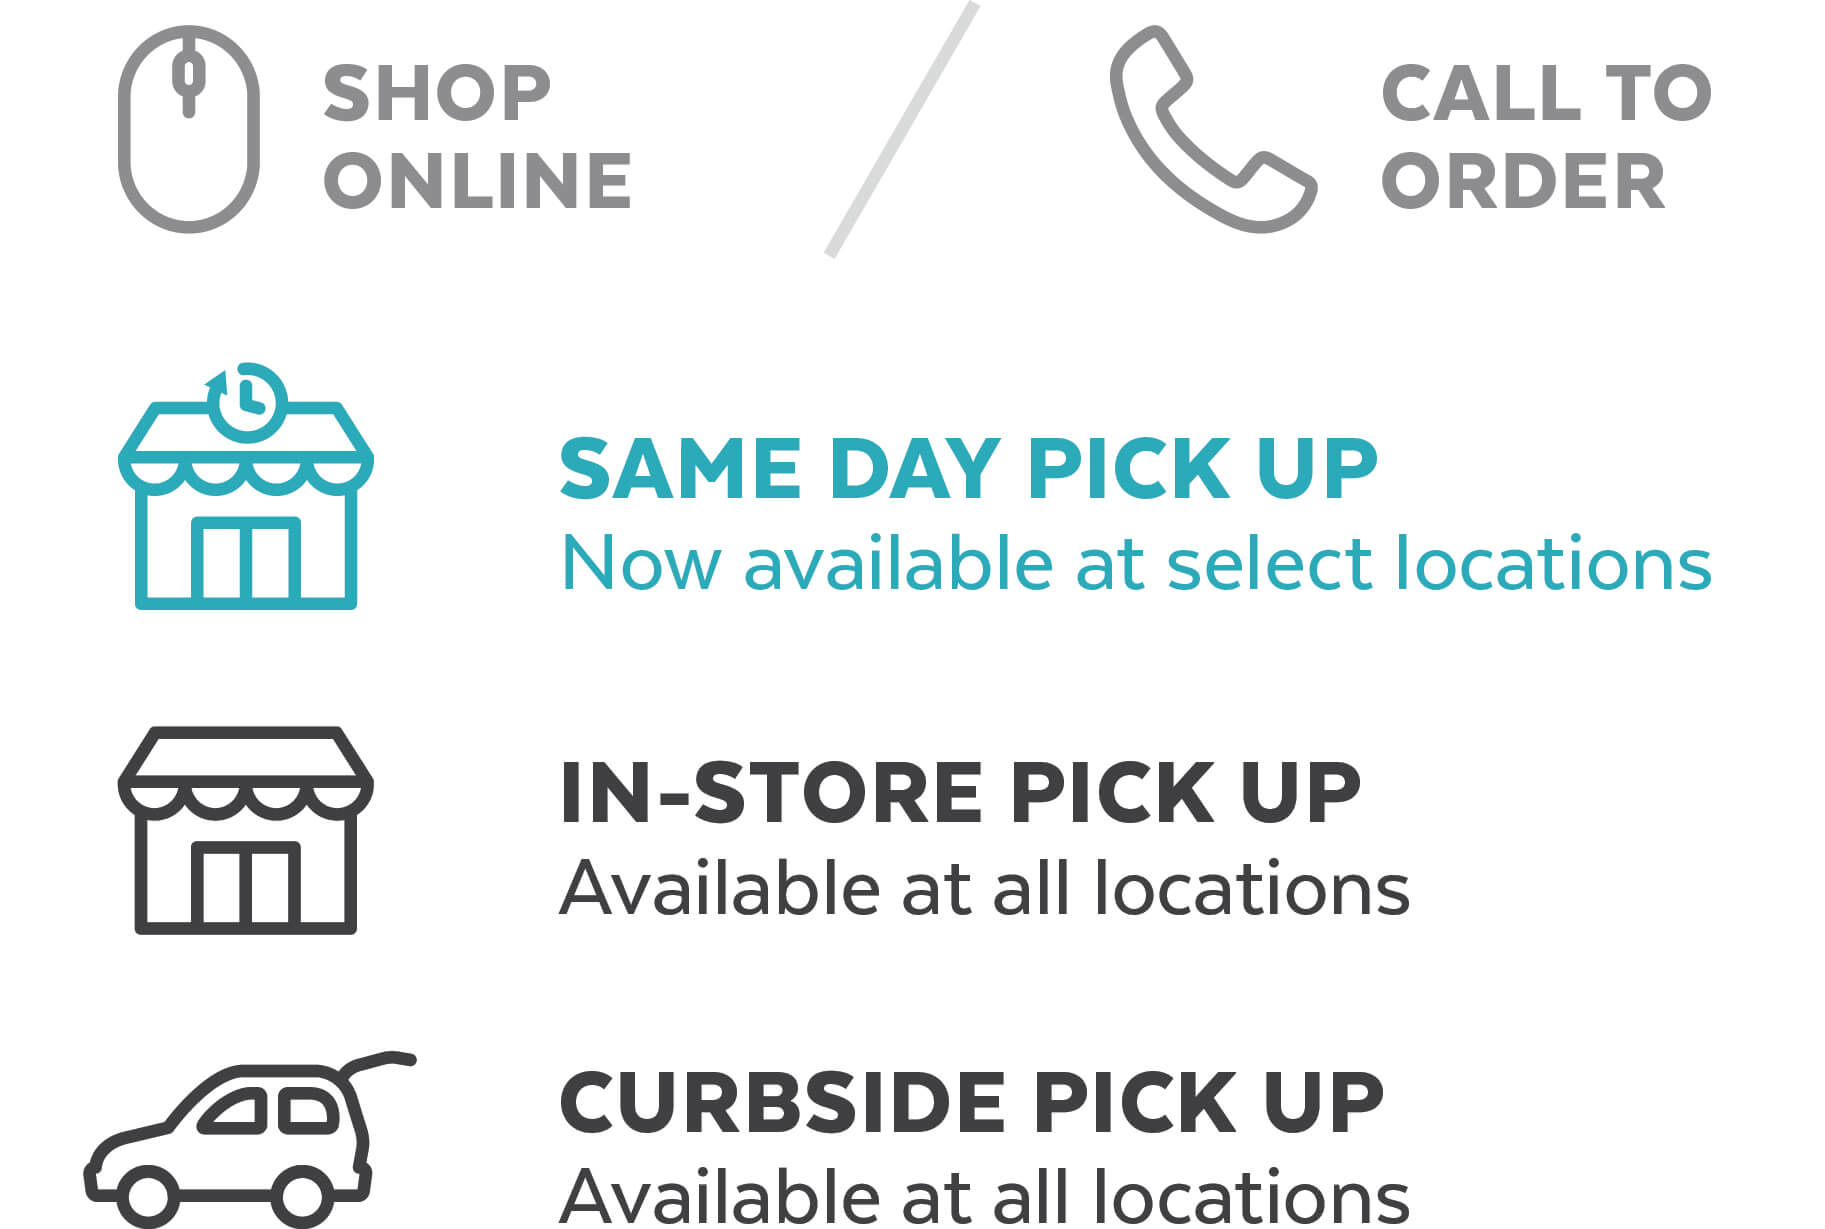 Shop online or call to order and try same day pick up, in-store or curbside